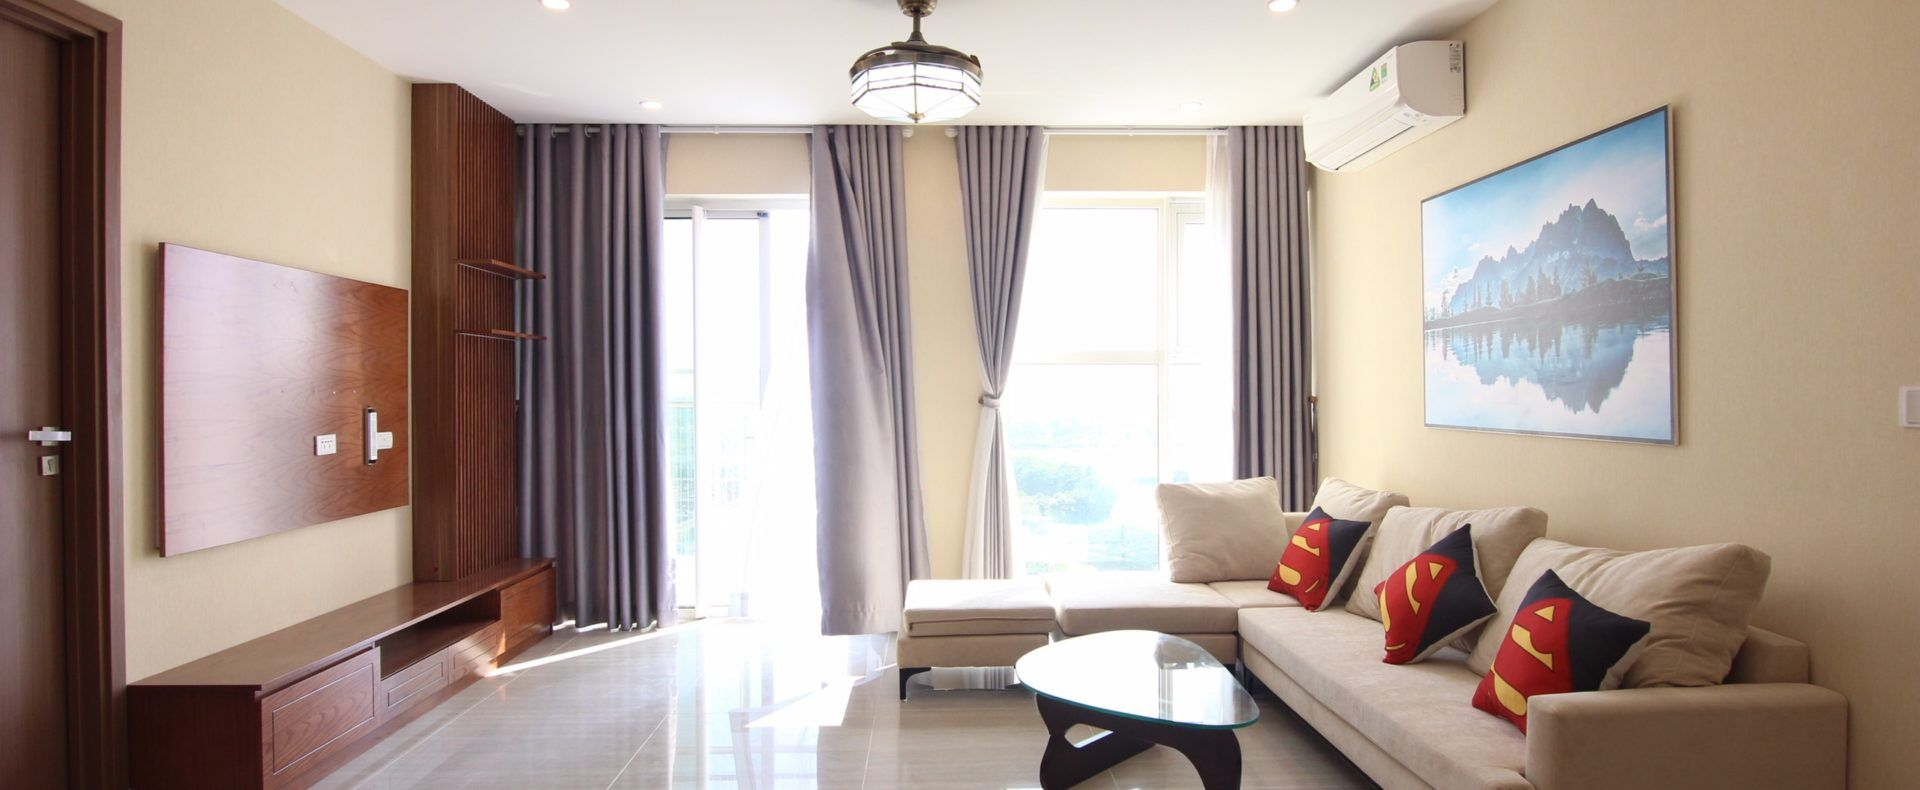 f78b0bc881c979b4a083fedb3abbffd5 - Gardens Apartments Fully Furnished And Serviced Apartments